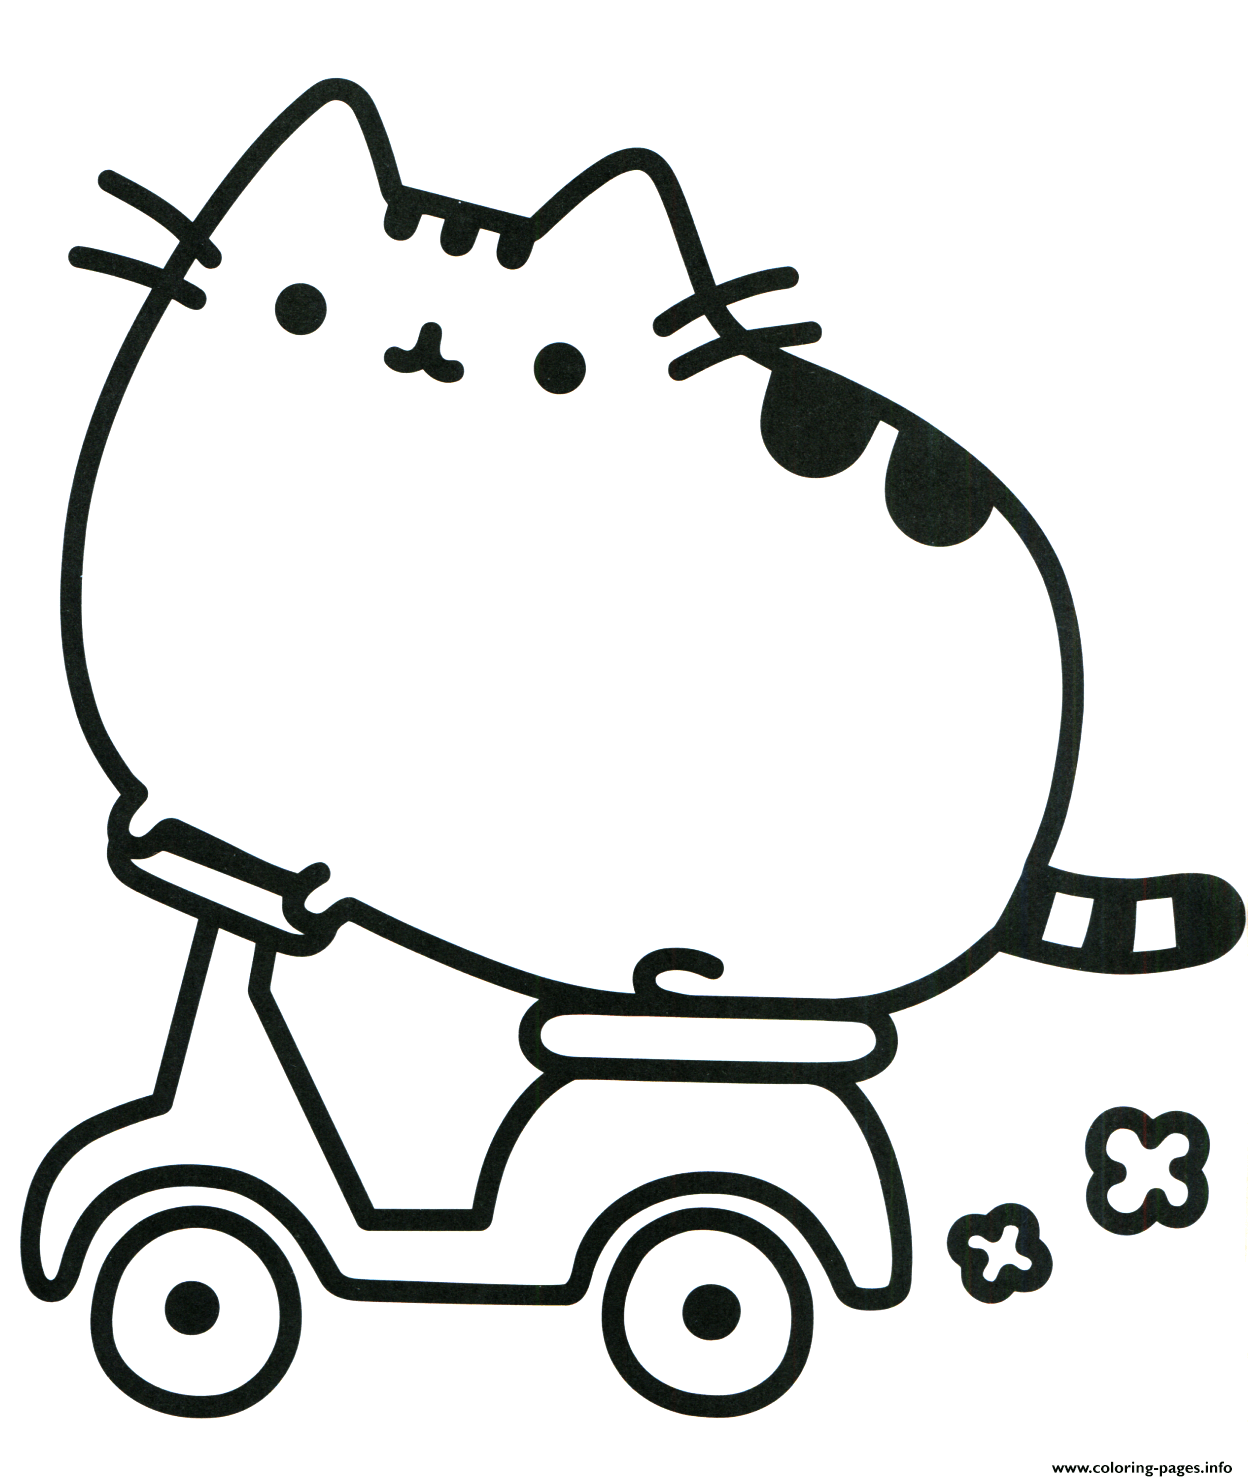 image about Pusheen Printable known as Pusheen Cat Upon Scooter Coloring Webpages Printable